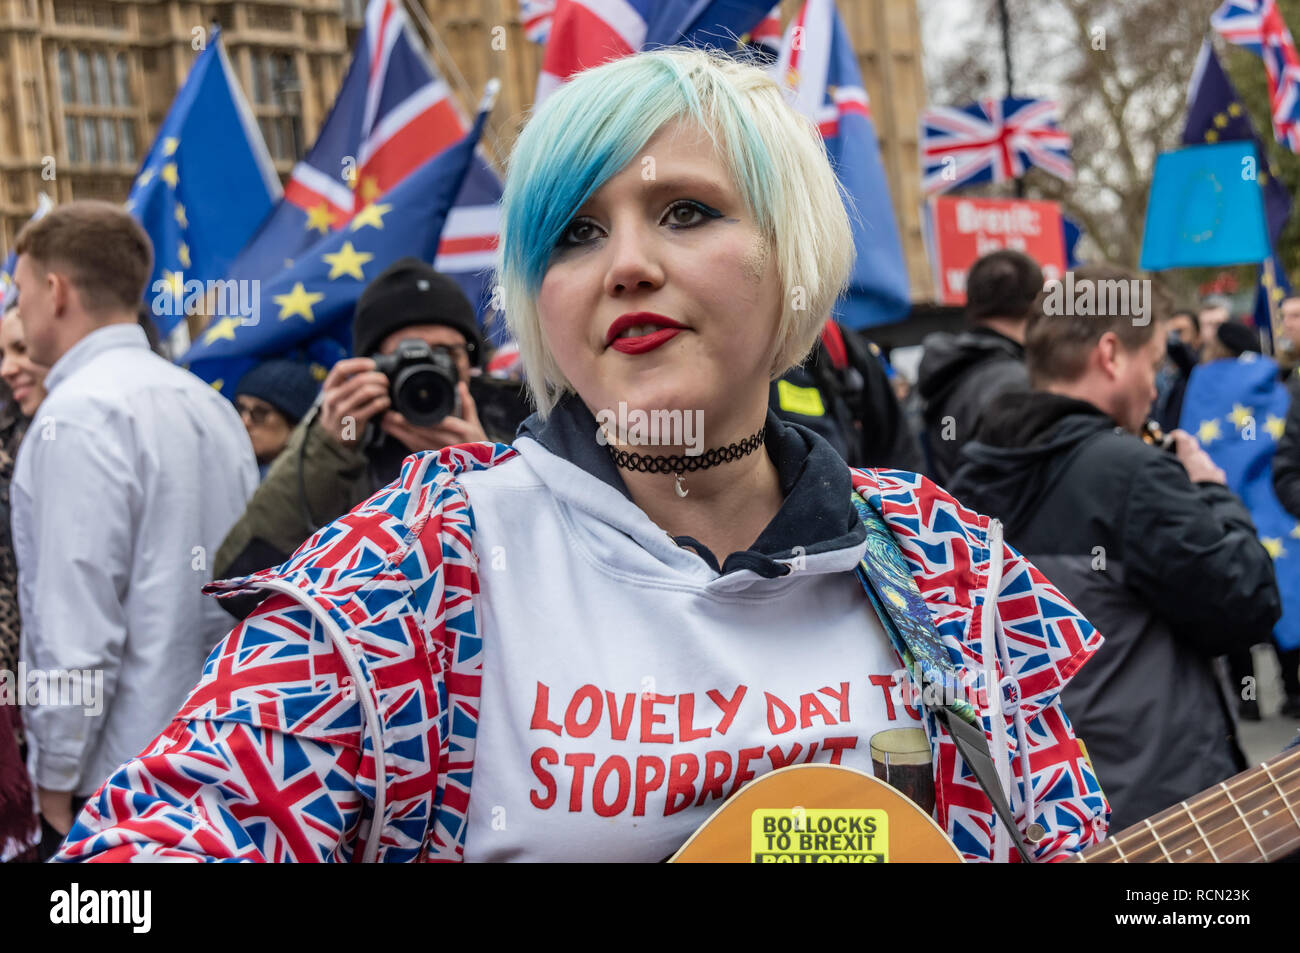 London, UK. 15th January 2019. EU Supergirl Madeleina Kay (Alba White Wolf) begins to sing about Europe. Groups against leaving the EU, including SODEM, Movement for Justice and In Limbo and Brexiteers Leave Means Leave and others protest opposite Parliament as Theresa May's Brexit deal was being debated.  While the two groups mainly kept apart, a small group, some in yellow jackets came to shout insults at pro-EU campaigners, while police tried to keep the two groups separate. Credit: Peter Marshall/Alamy Live News - Stock Image